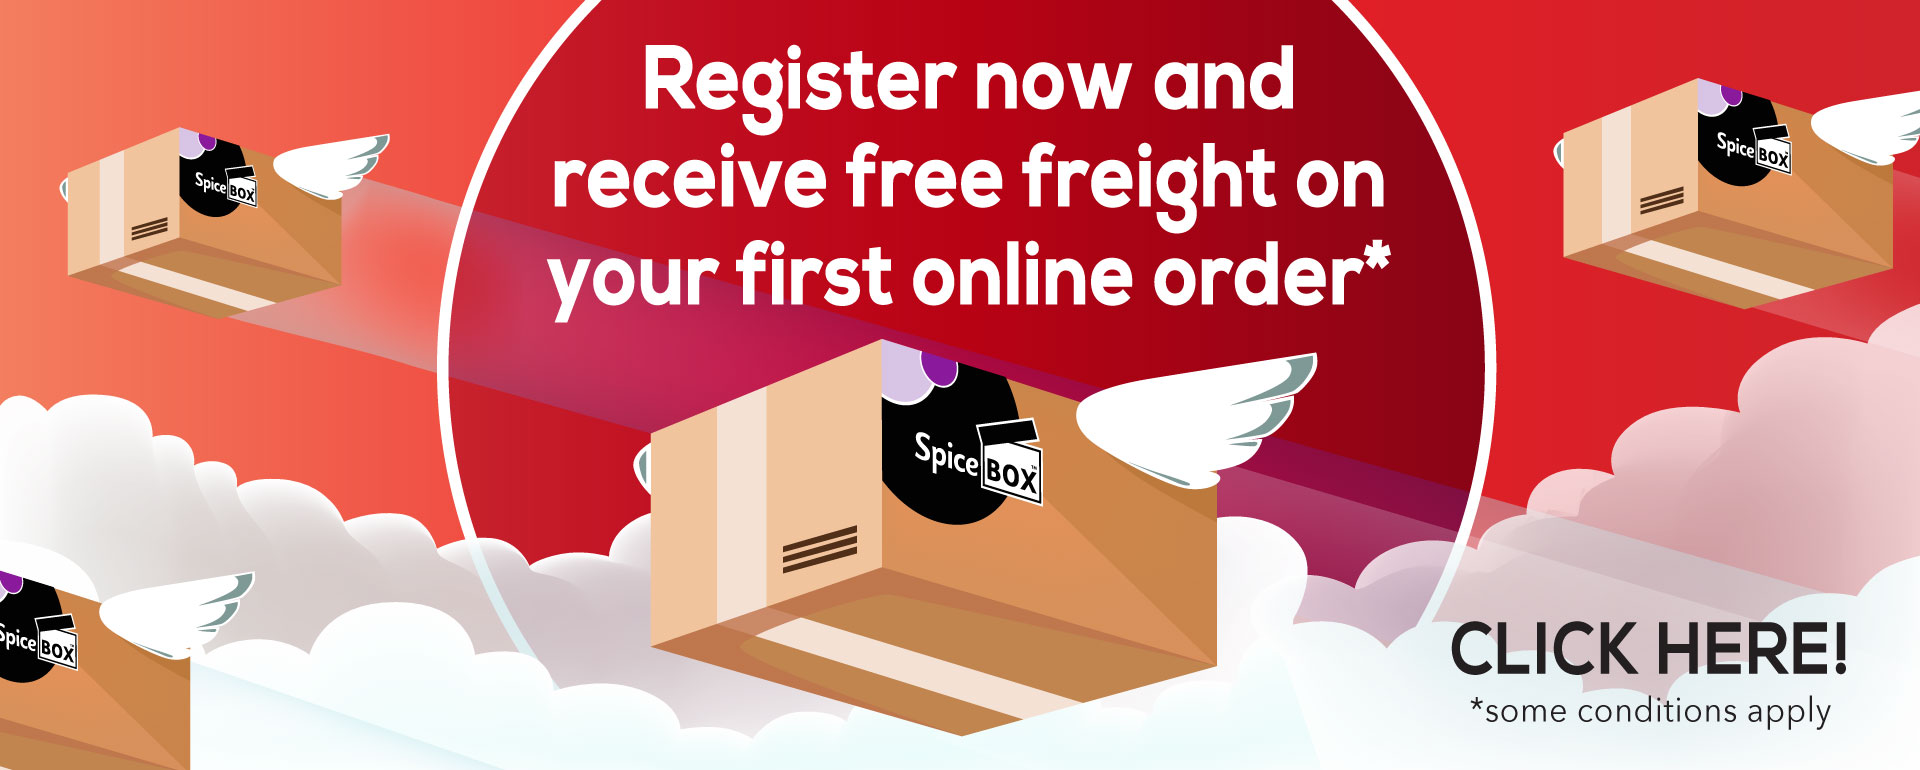 Register for Free freight on your first online order